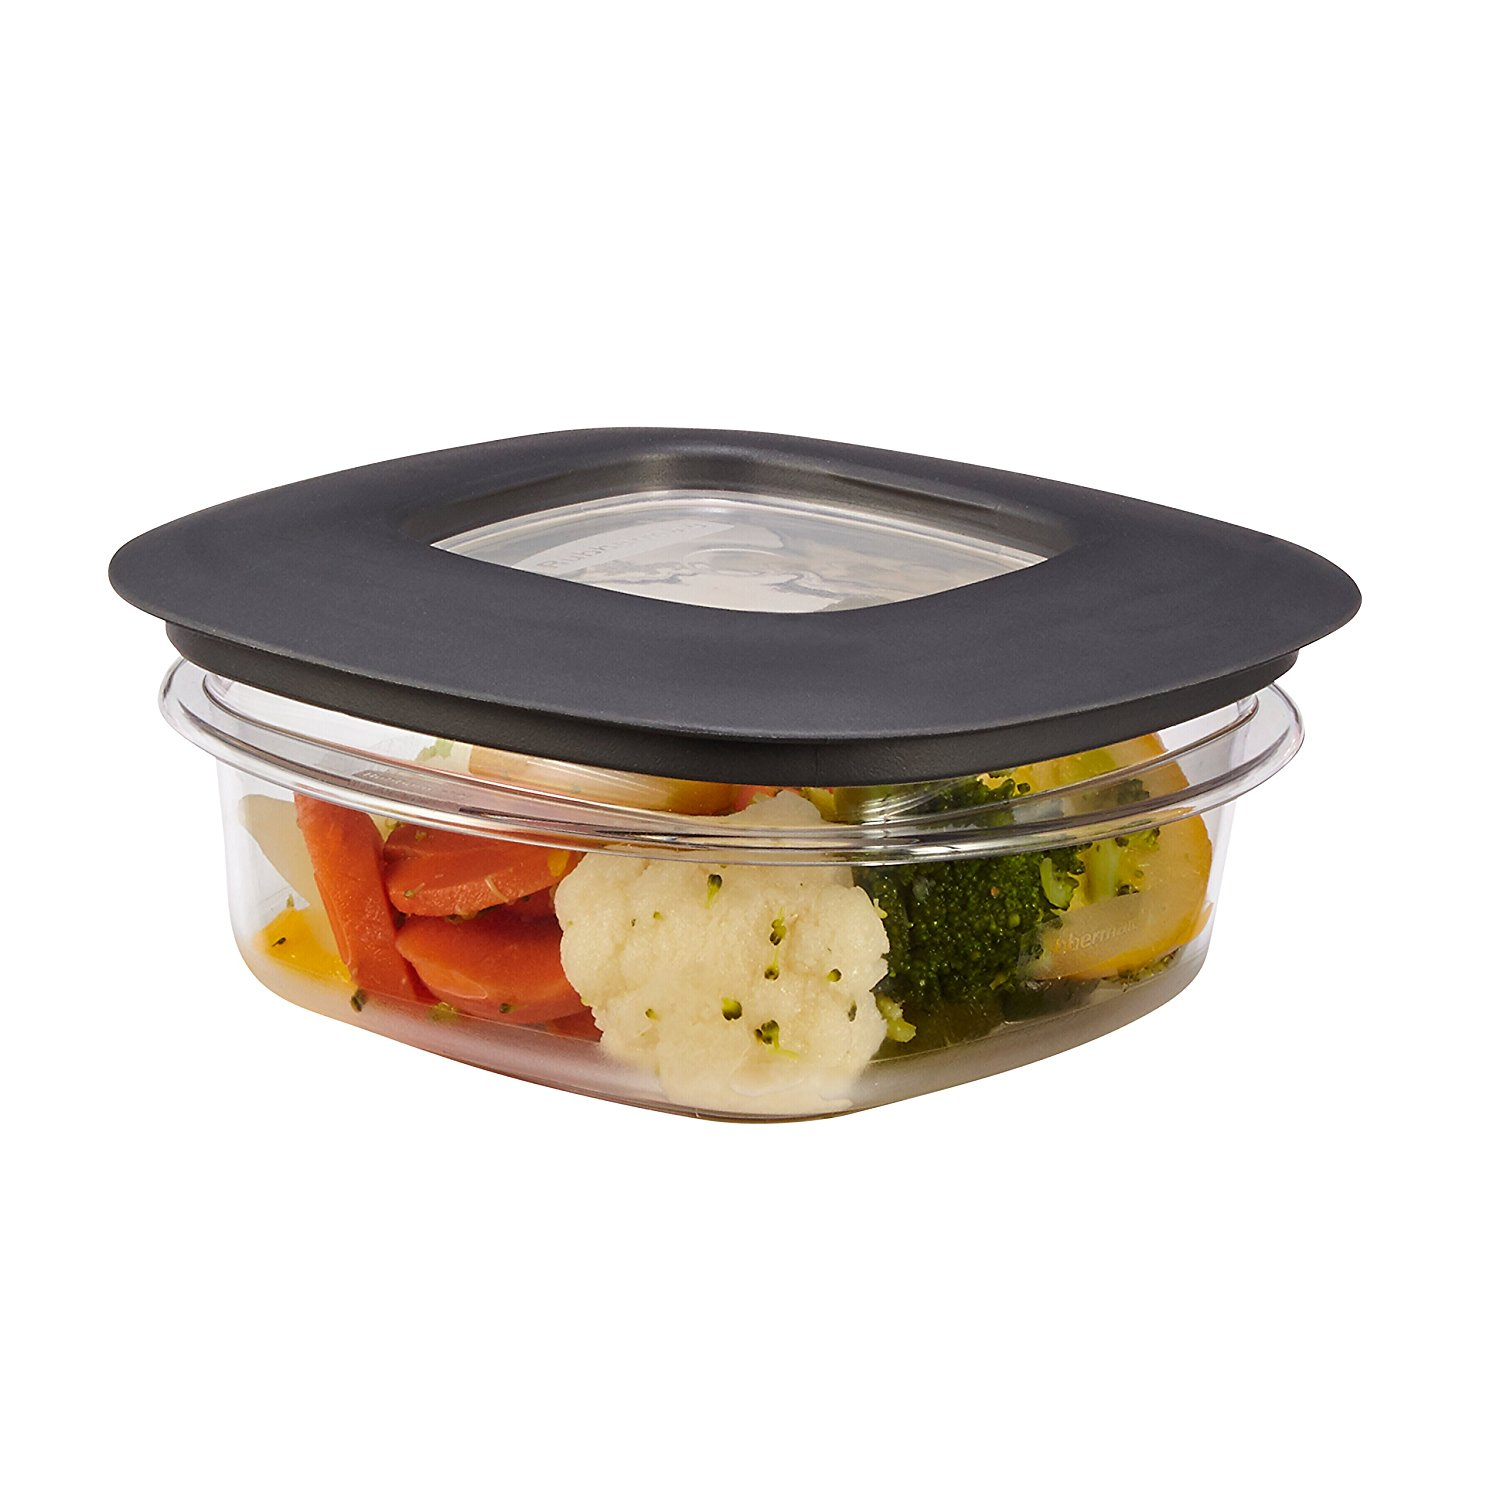 Rubbermaid premier food storage containers grey ebay for Premier cuisine